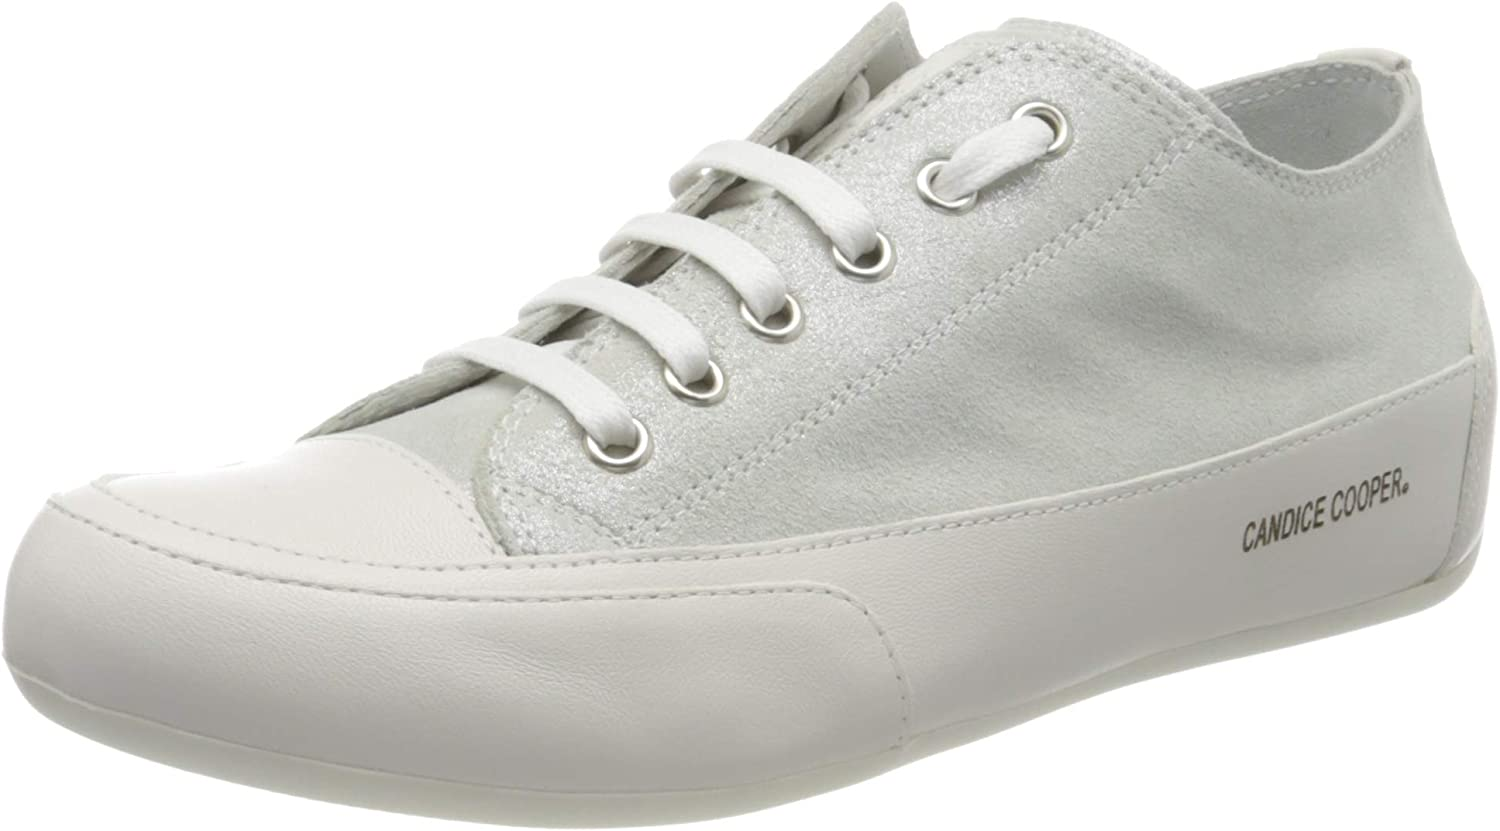 Candice Cooper Womens Low-Top Trainers